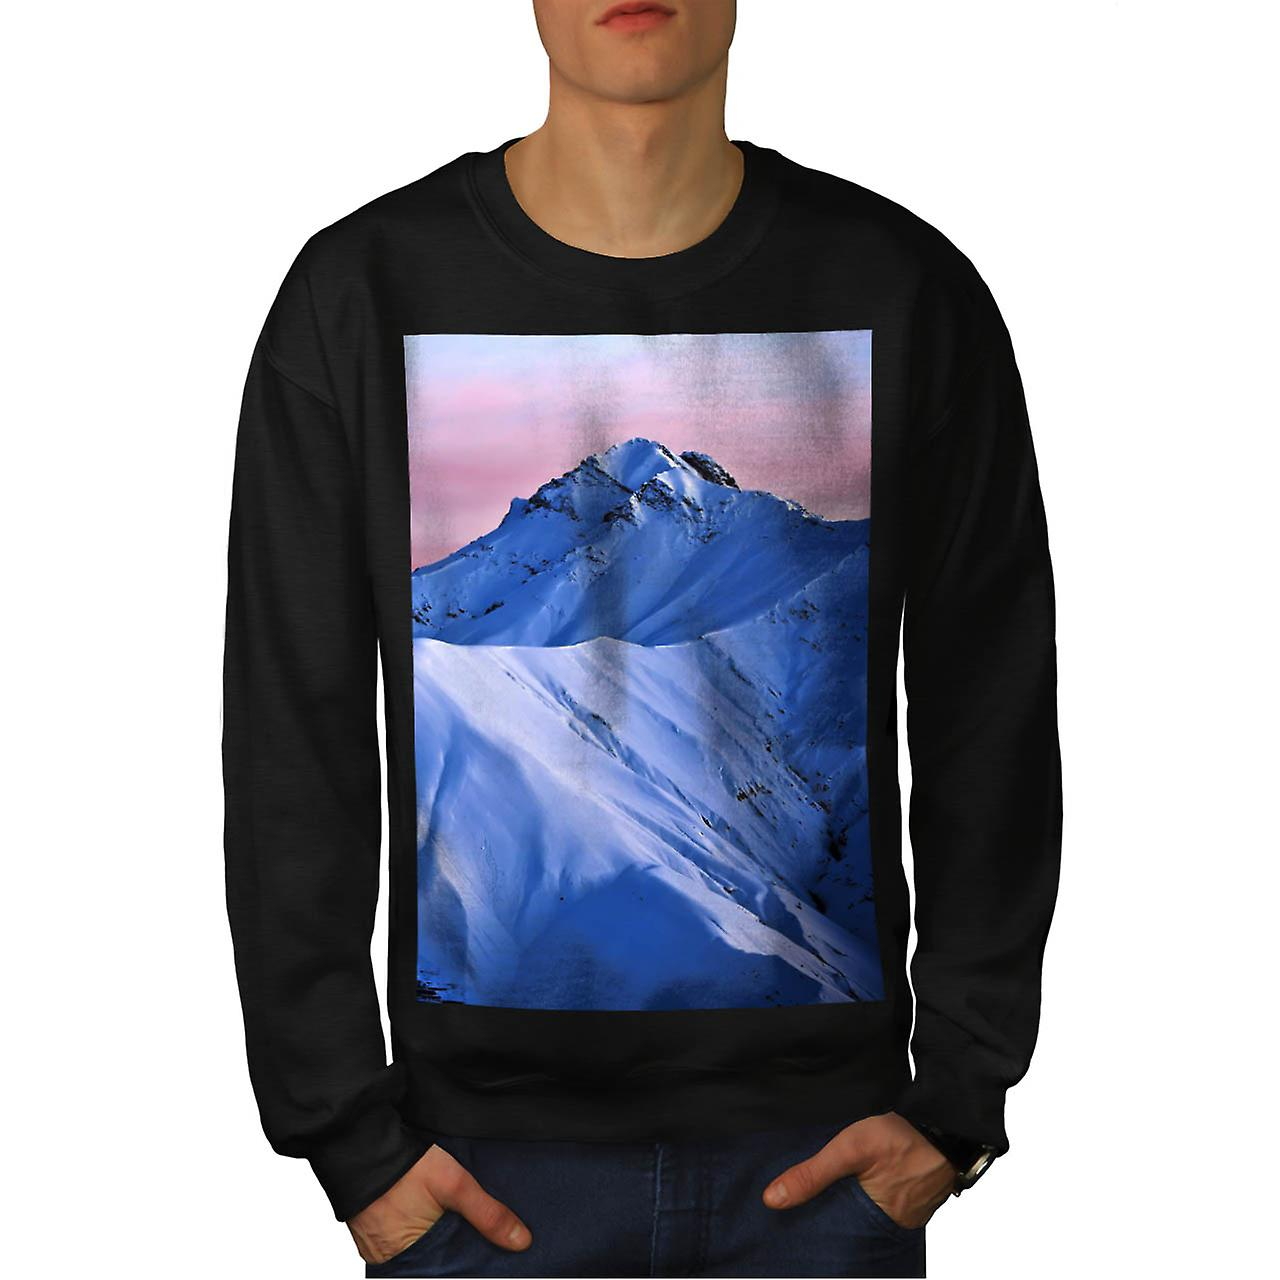 Rocky Mountain Peaks Snow Rock Men Black Sweatshirt | Wellcoda